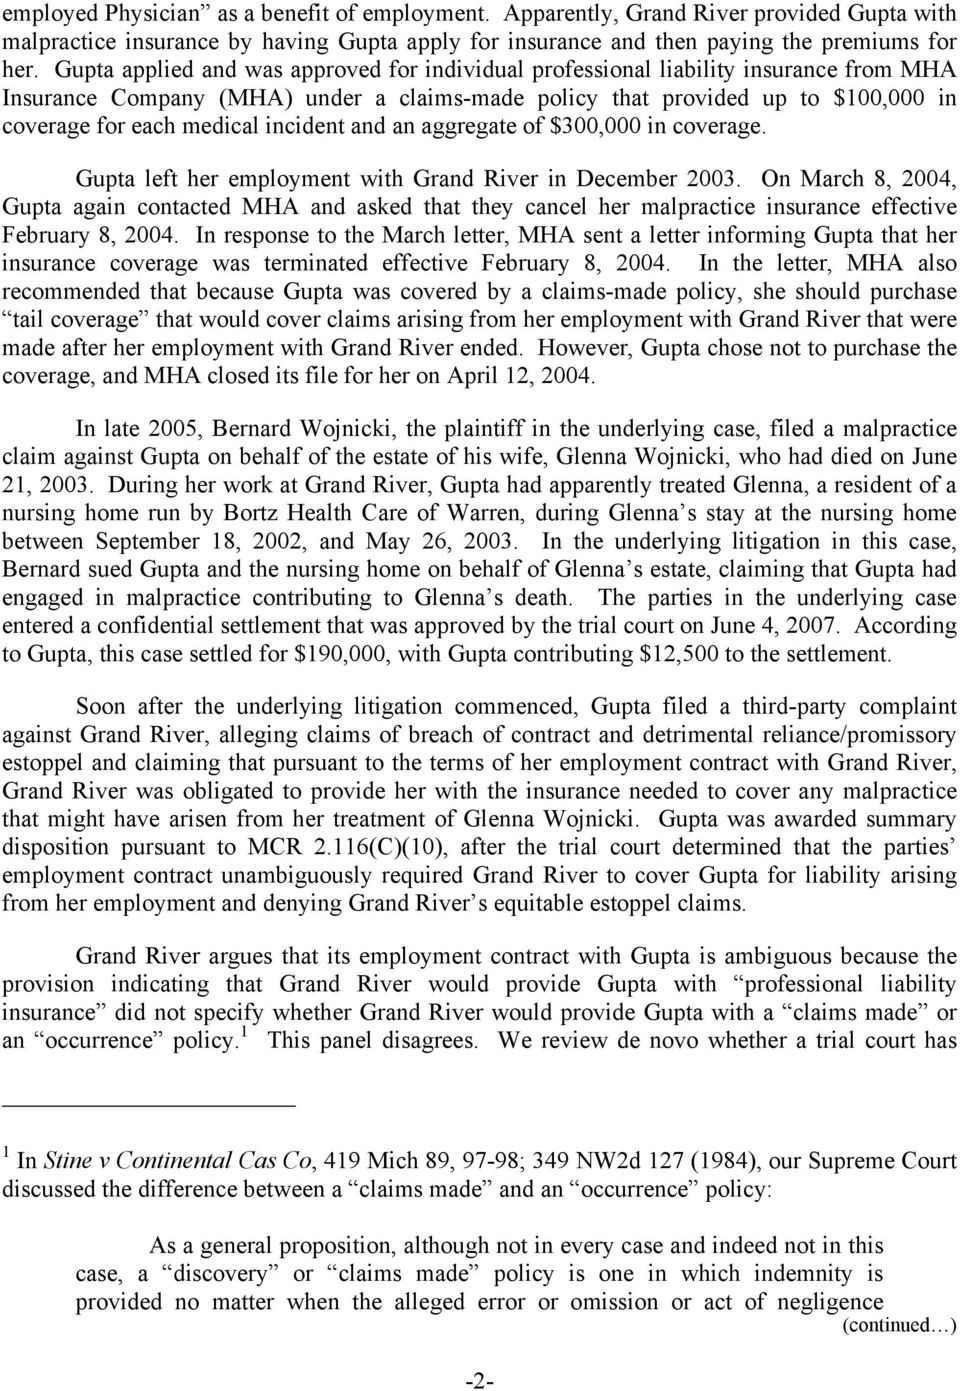 incident and an aggregate of $300,000 in coverage. Gupta left her employment with Grand River in December 2003.